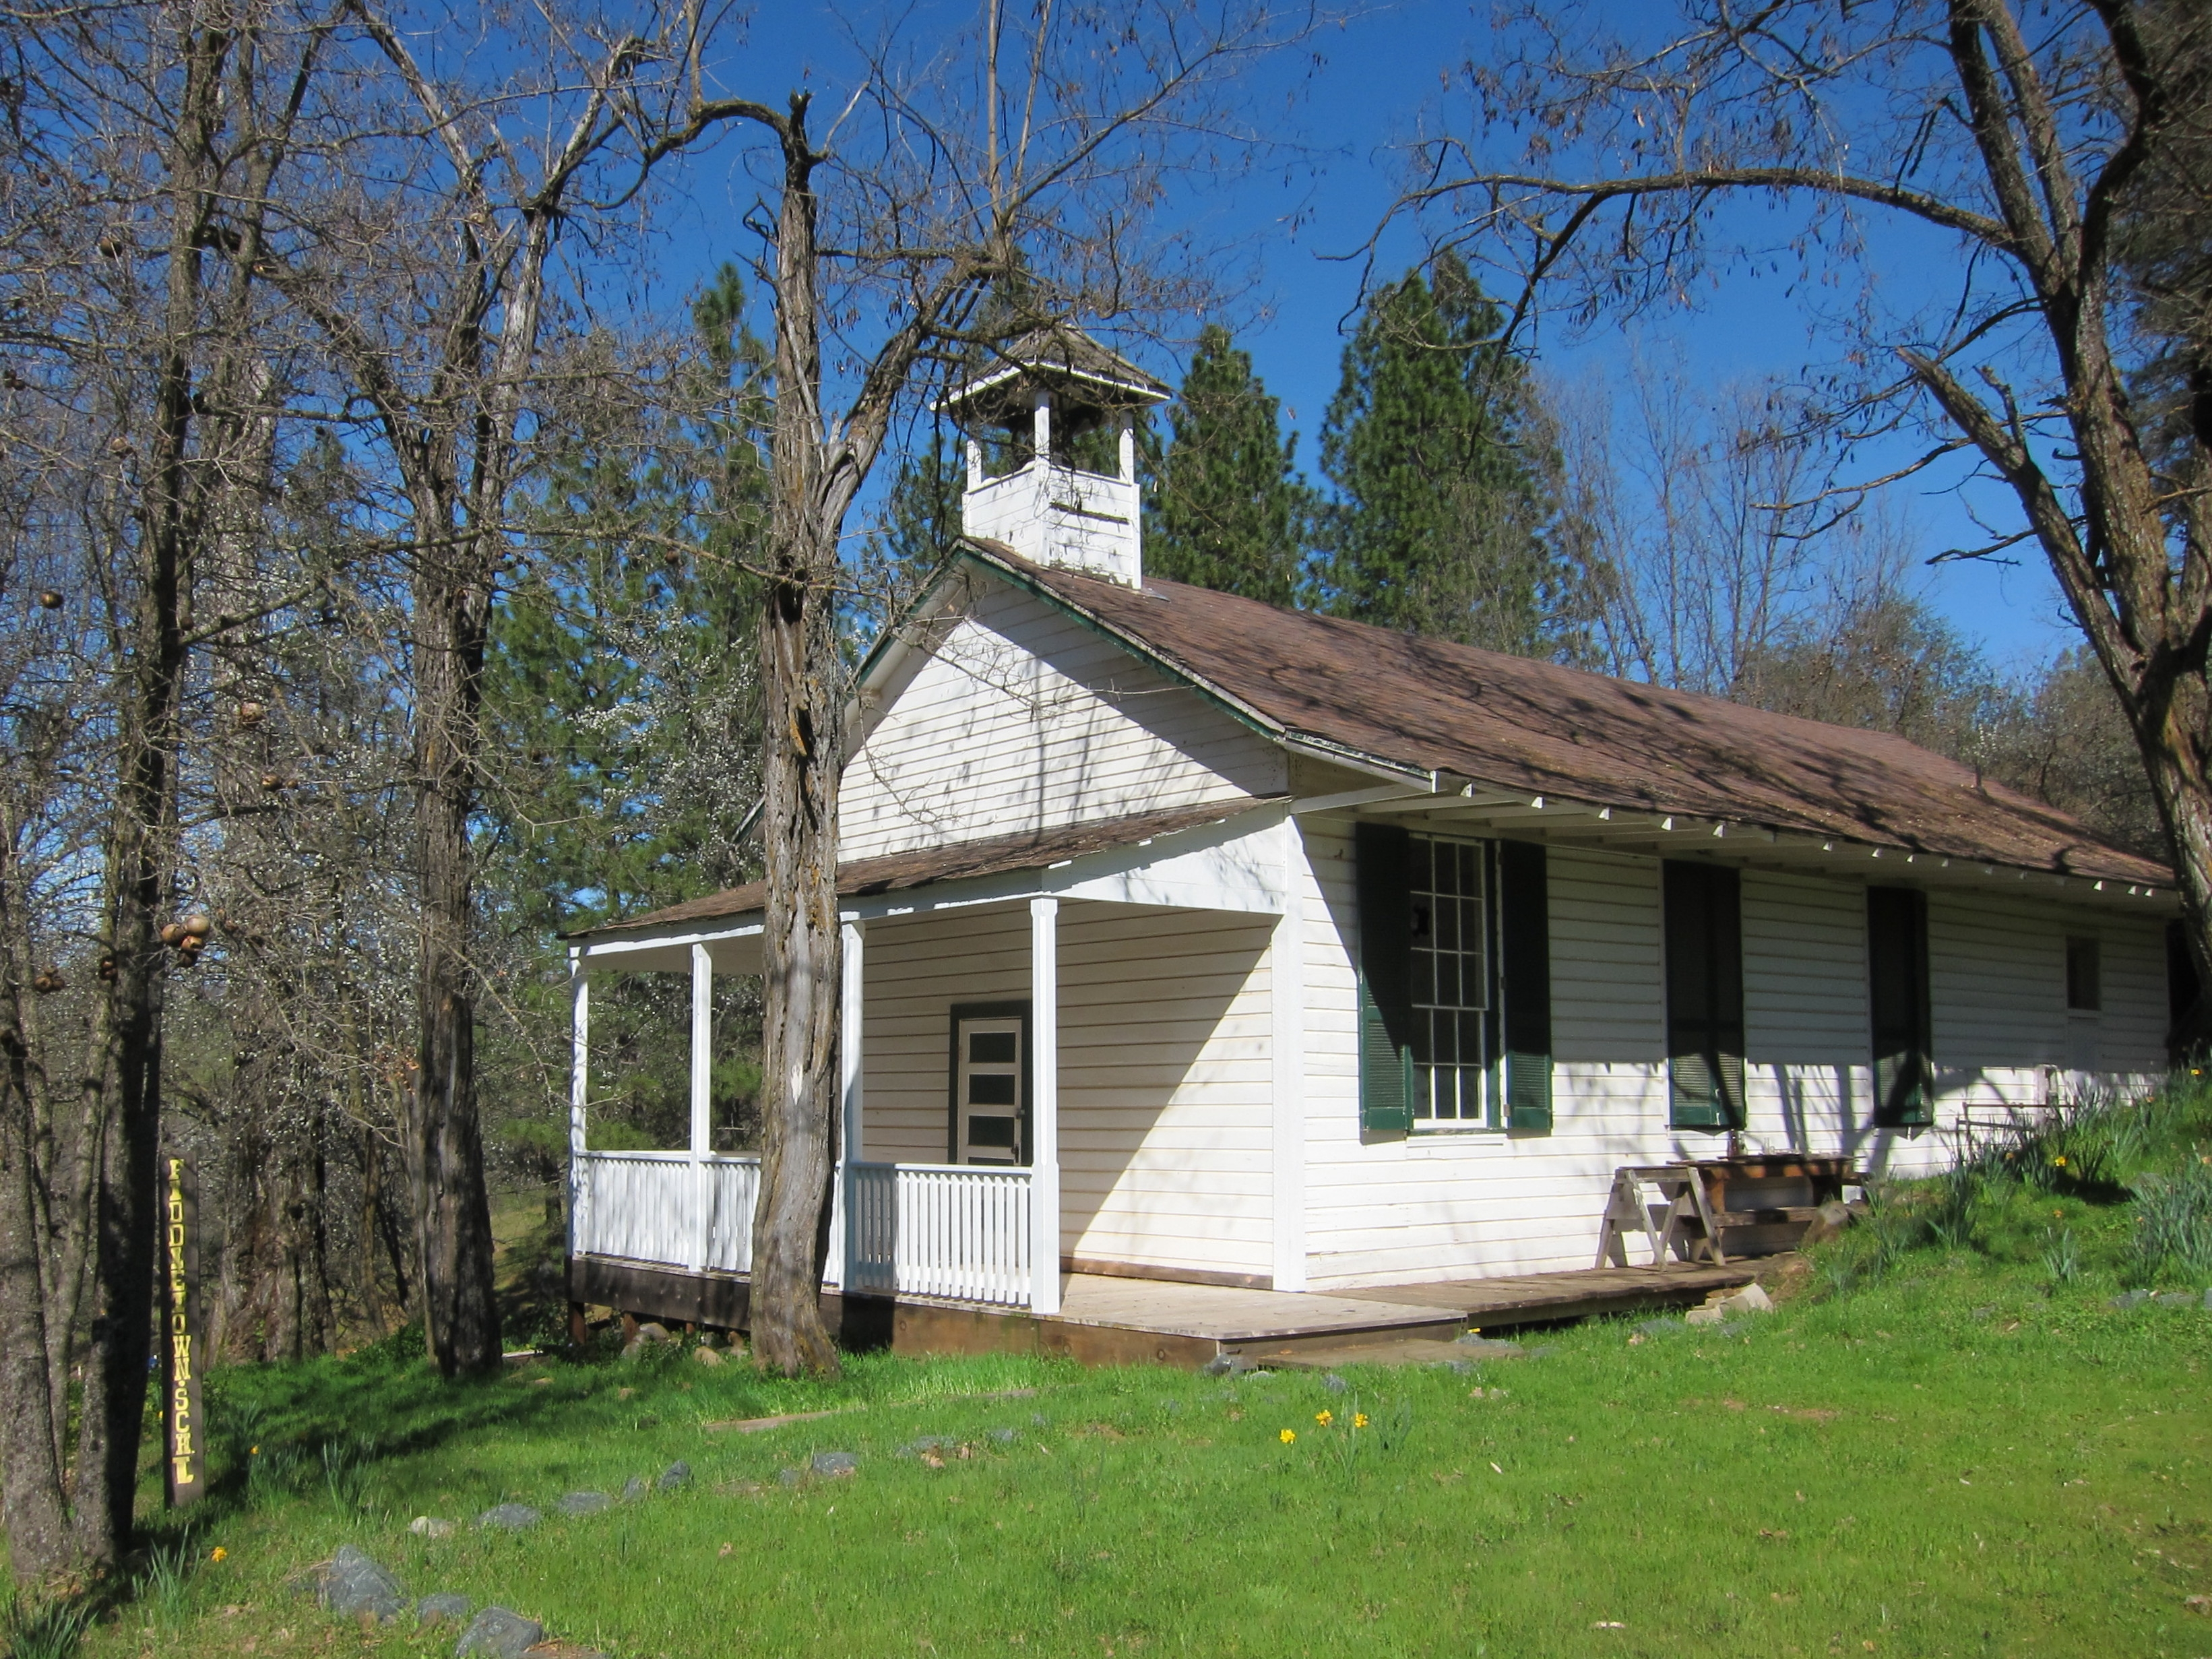 Oleta Schoolhouse, on American Flat Road